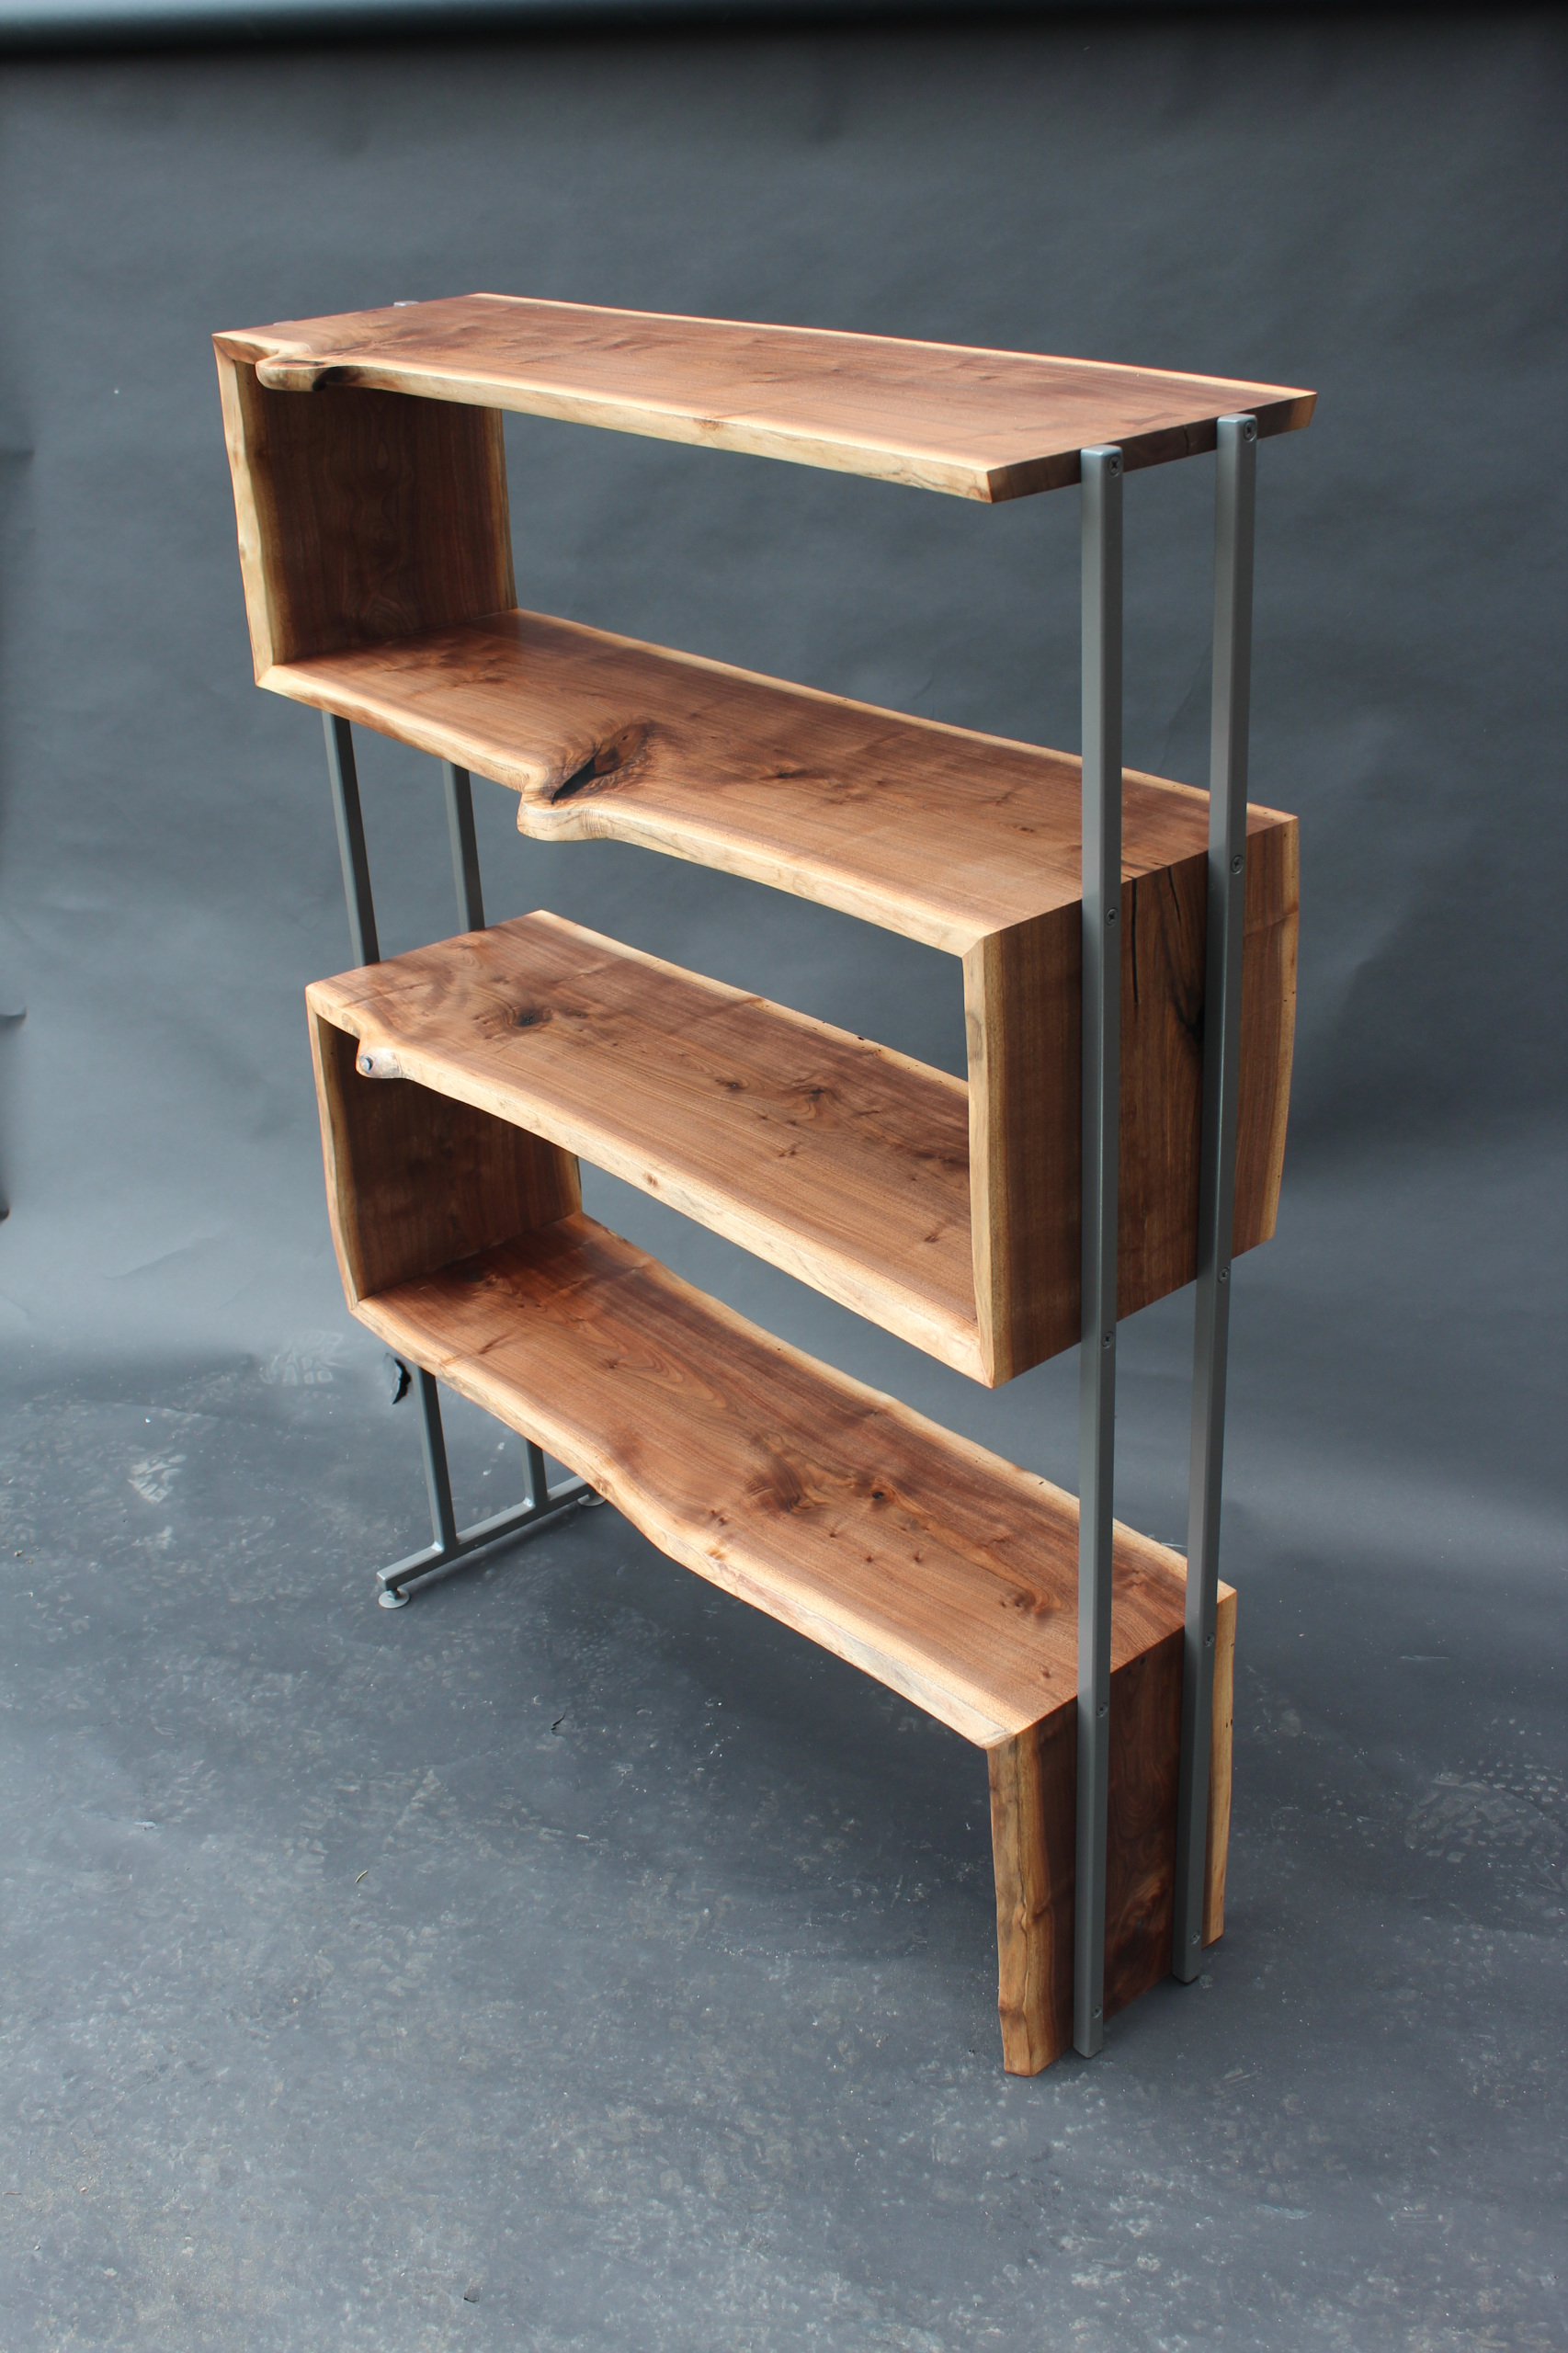 Wood Shelves Pictures